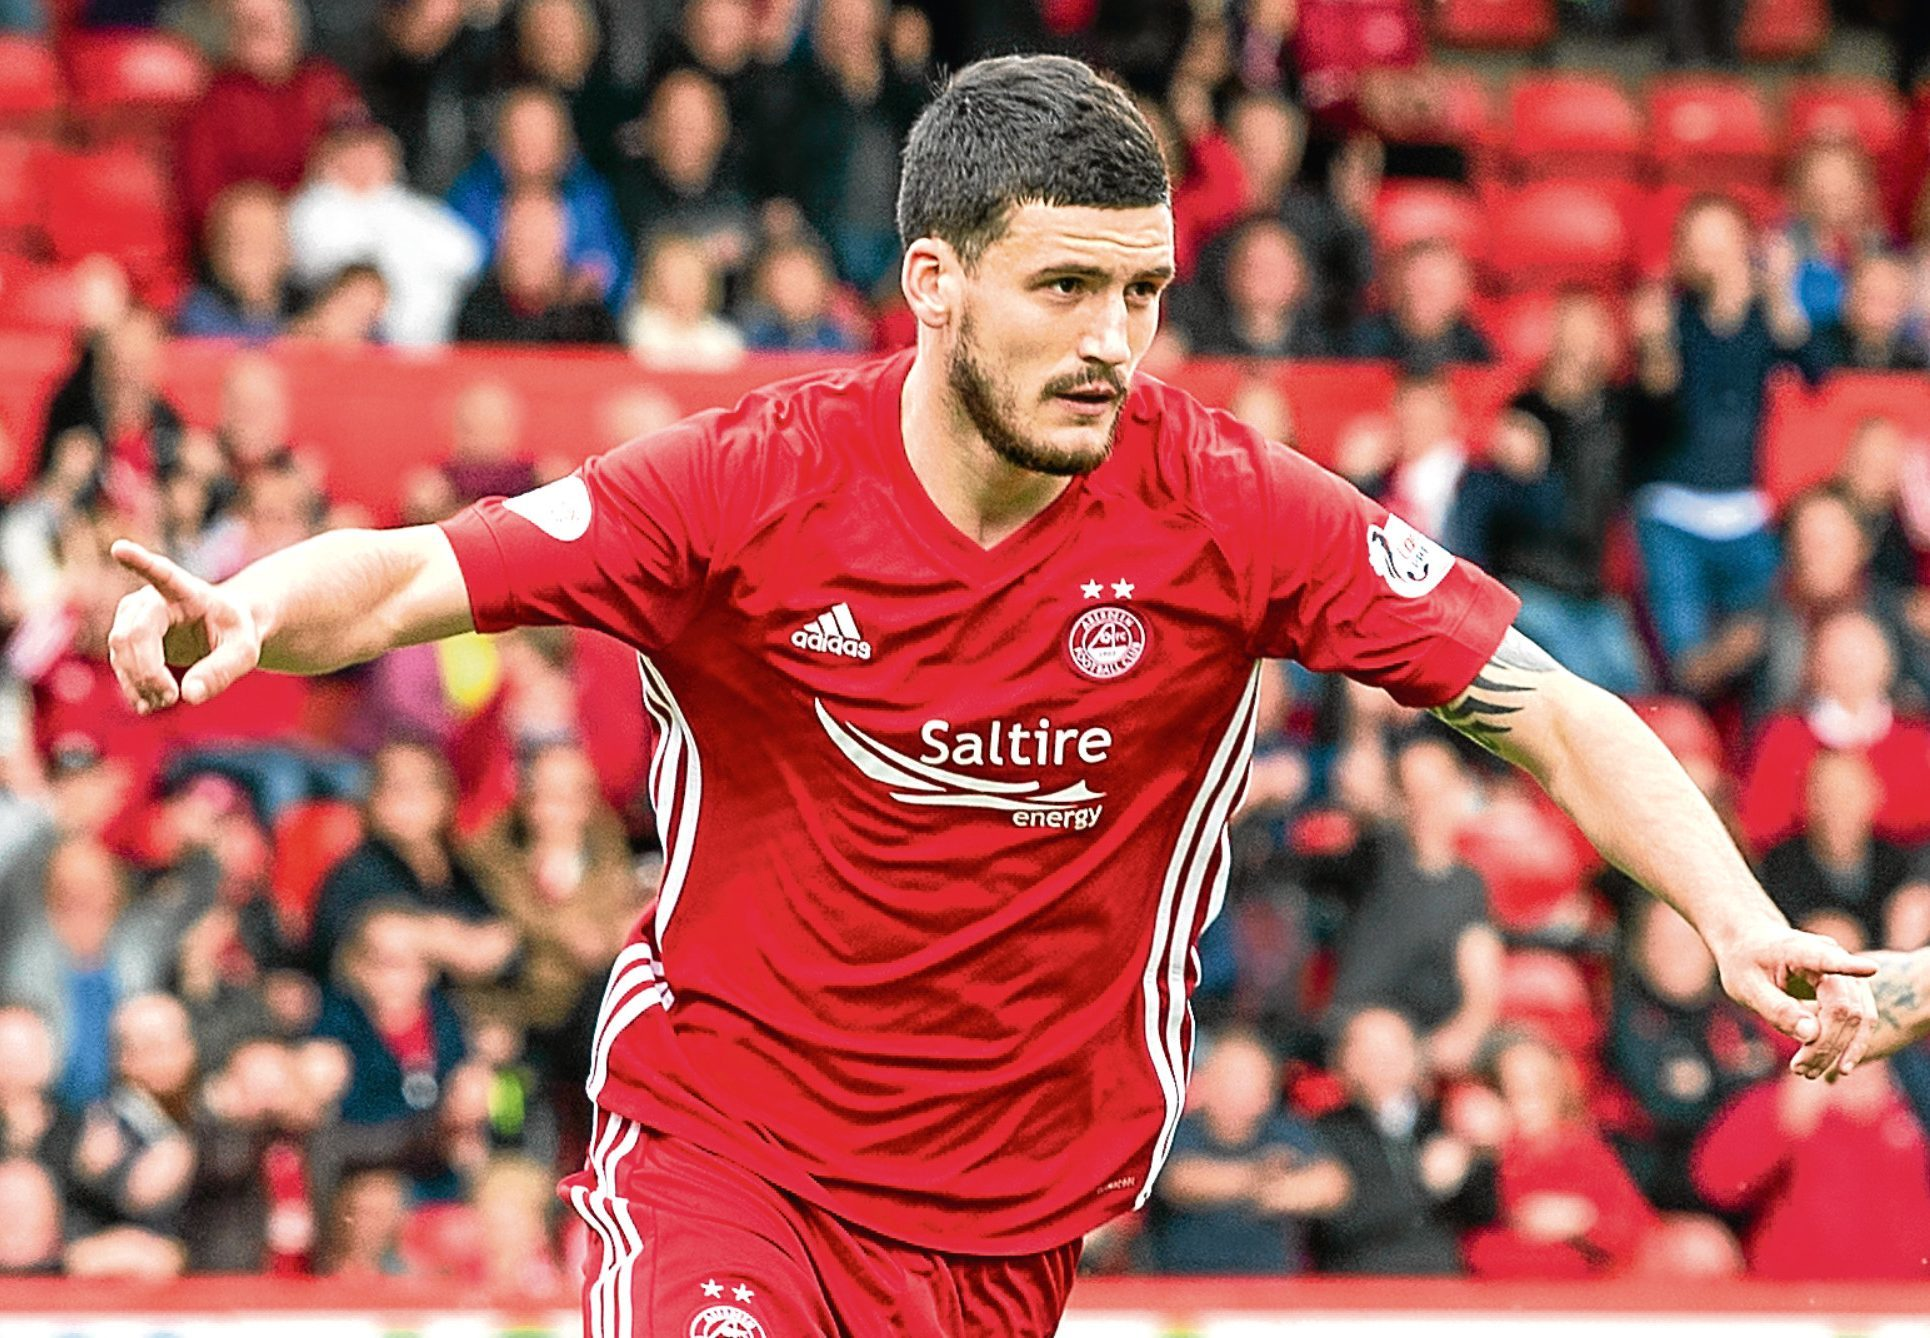 Anthony O'Connor opens the scoring at Pittodrie against Hamilton.